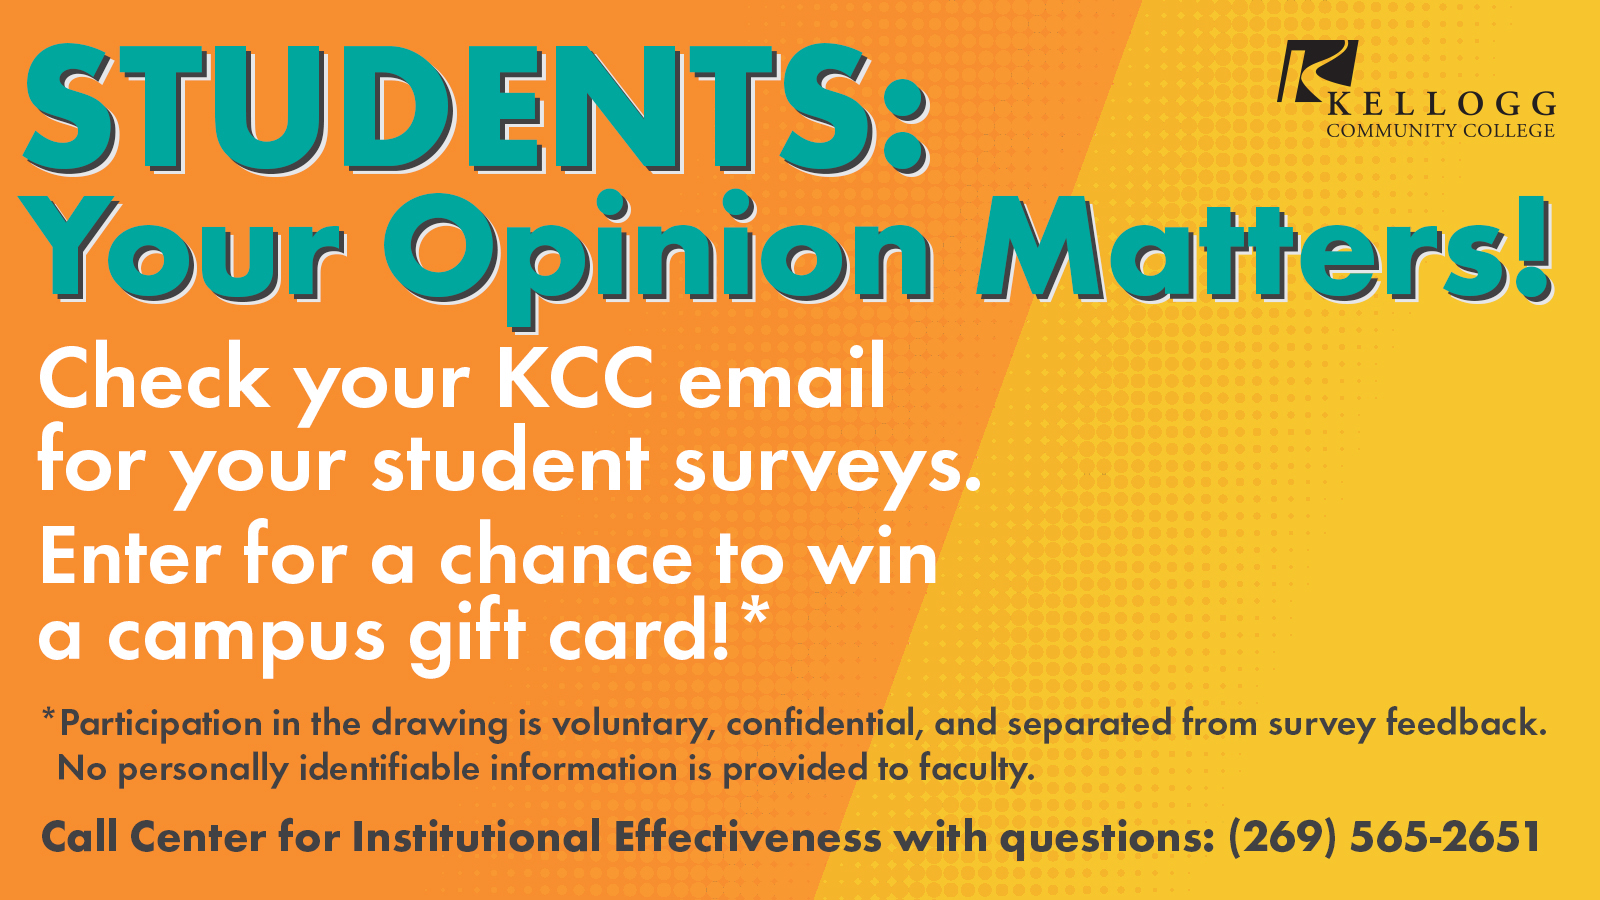 A text slide promoting a student survey.